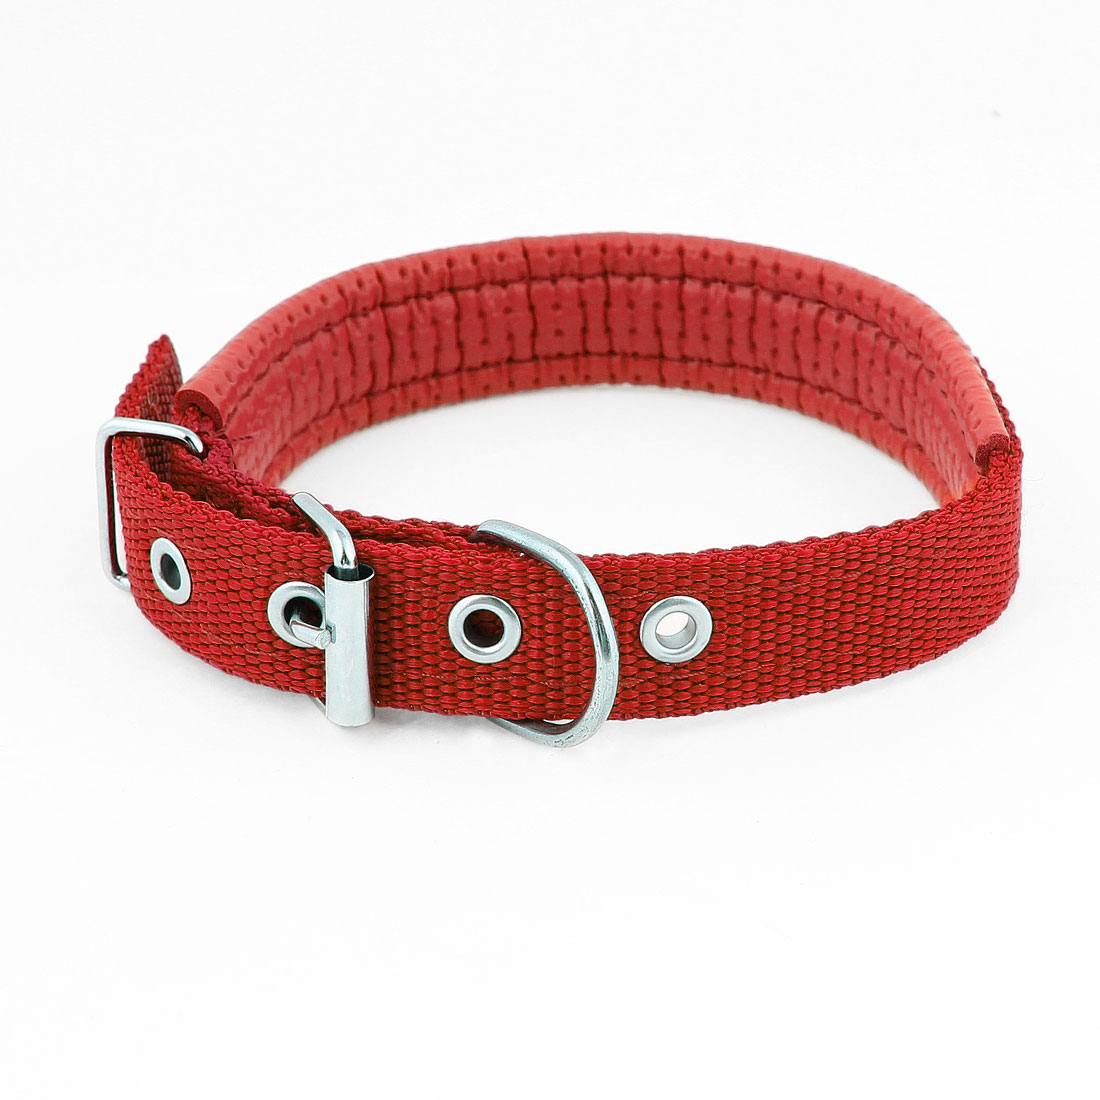 Single Prong Buckle Adjustable Nylon Pet Dog Doggie Collar Necklace Red